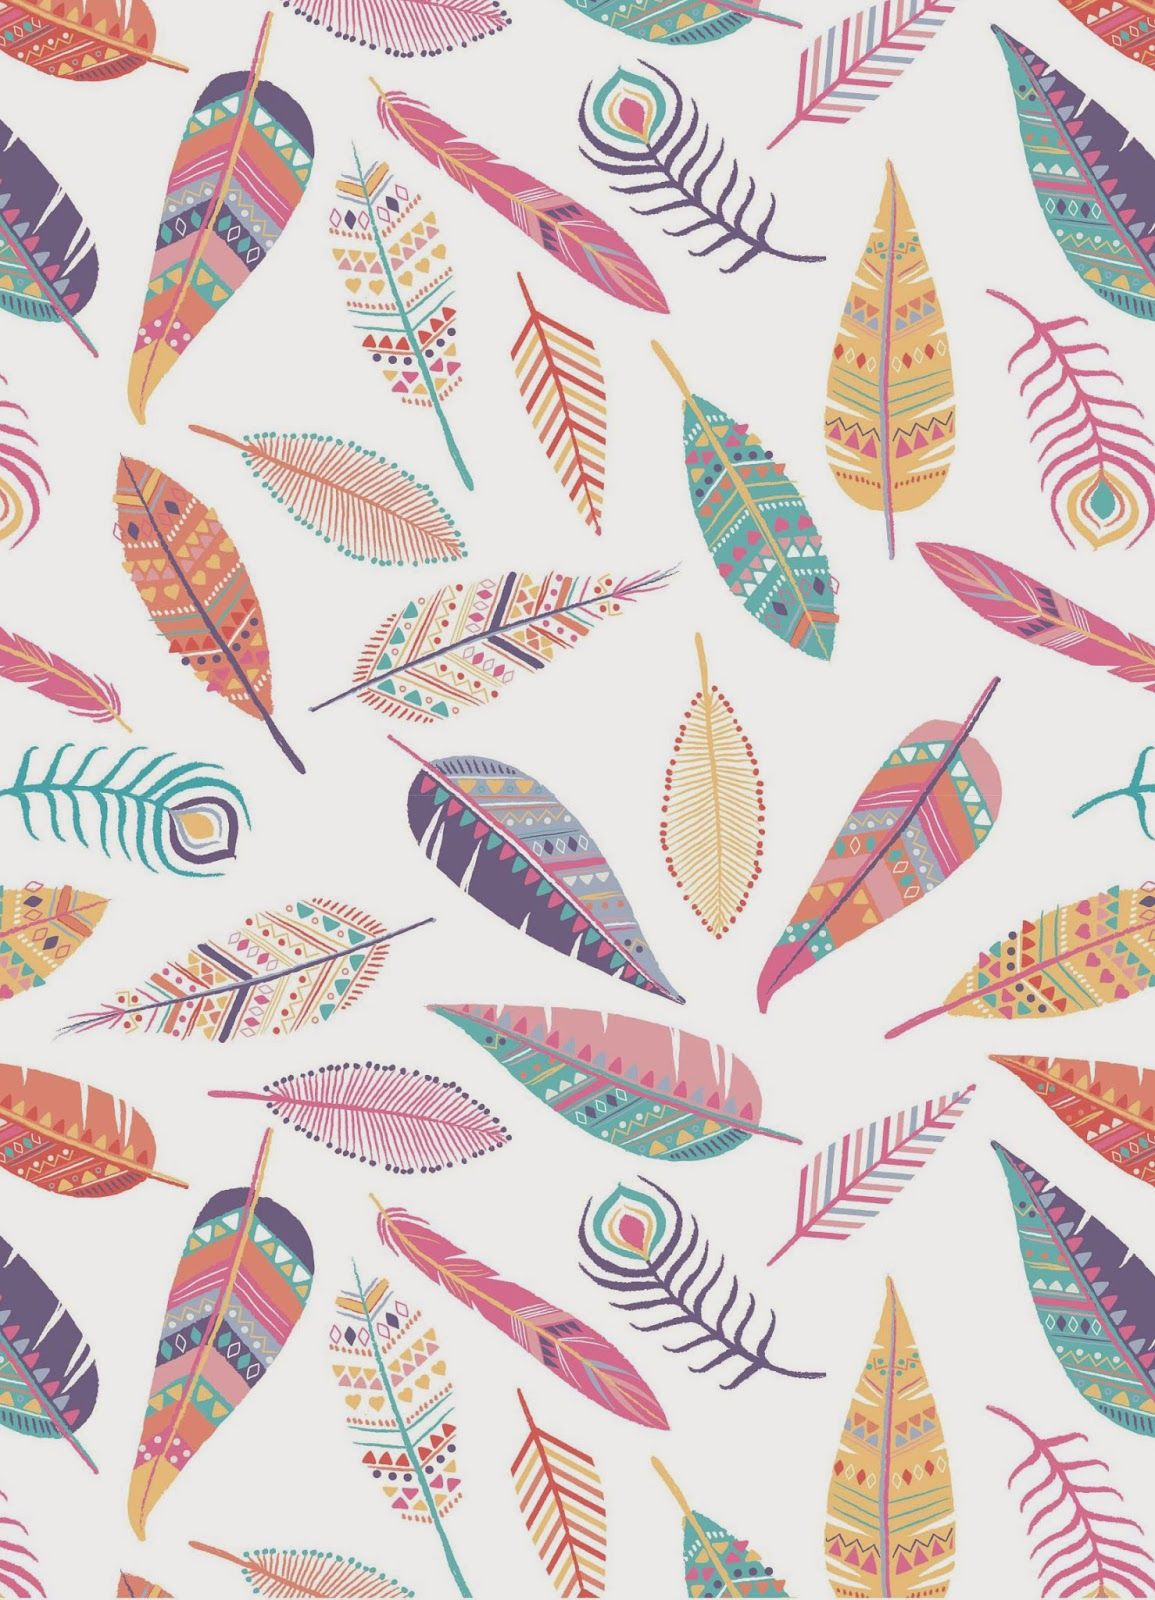 Emily kiddy print and pattern pattern pinterest for Print wallpaper designs